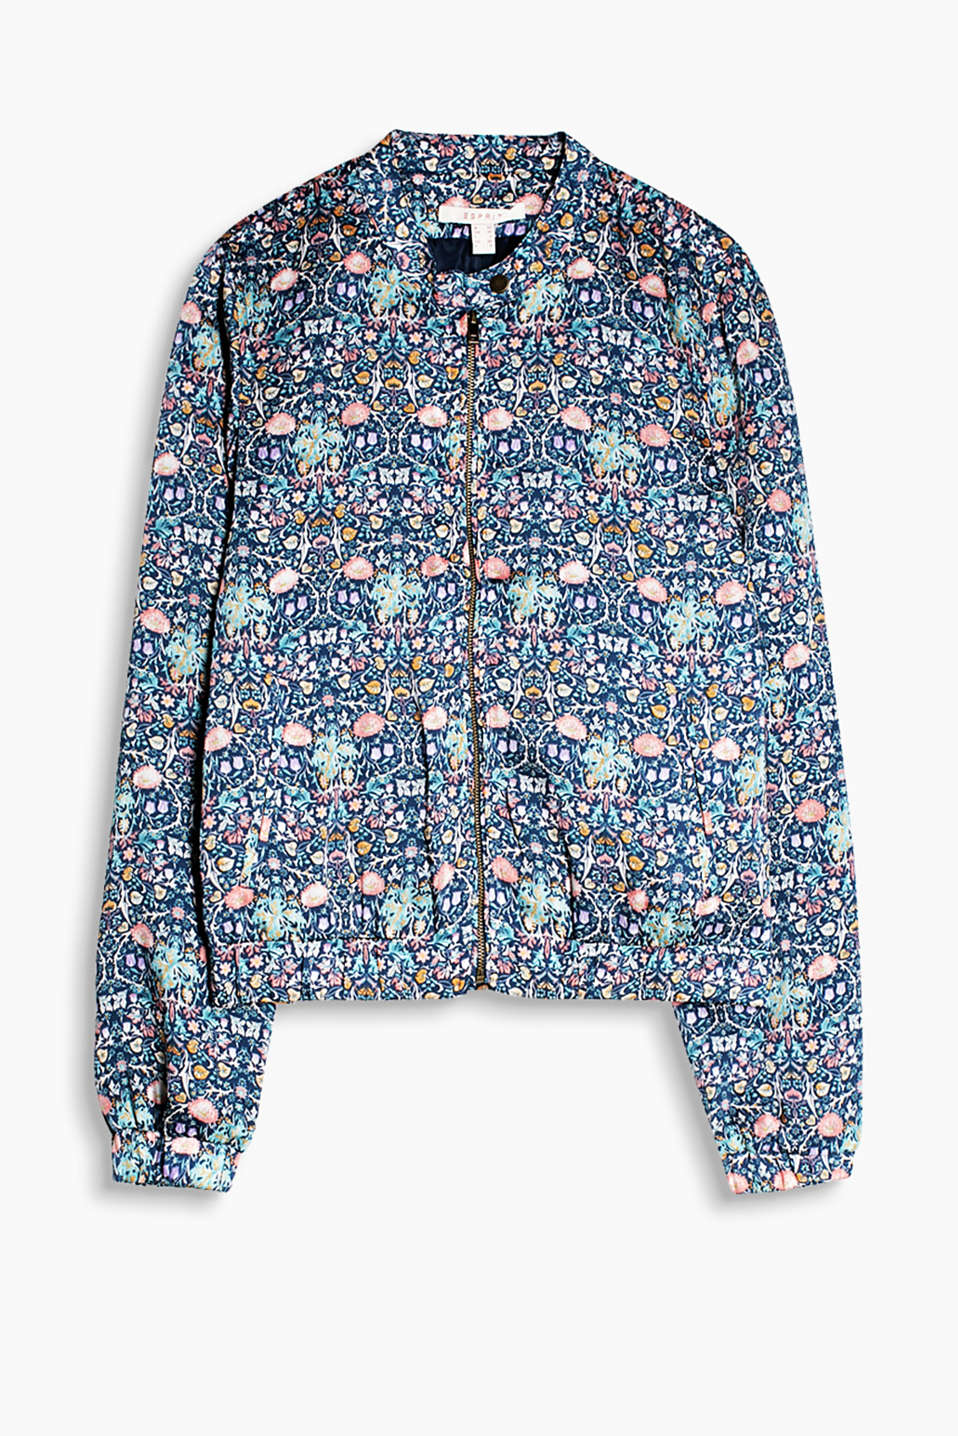 Summery, lightweight bomber jacket with a floral print, a characteristic zip and ribbed cuffs